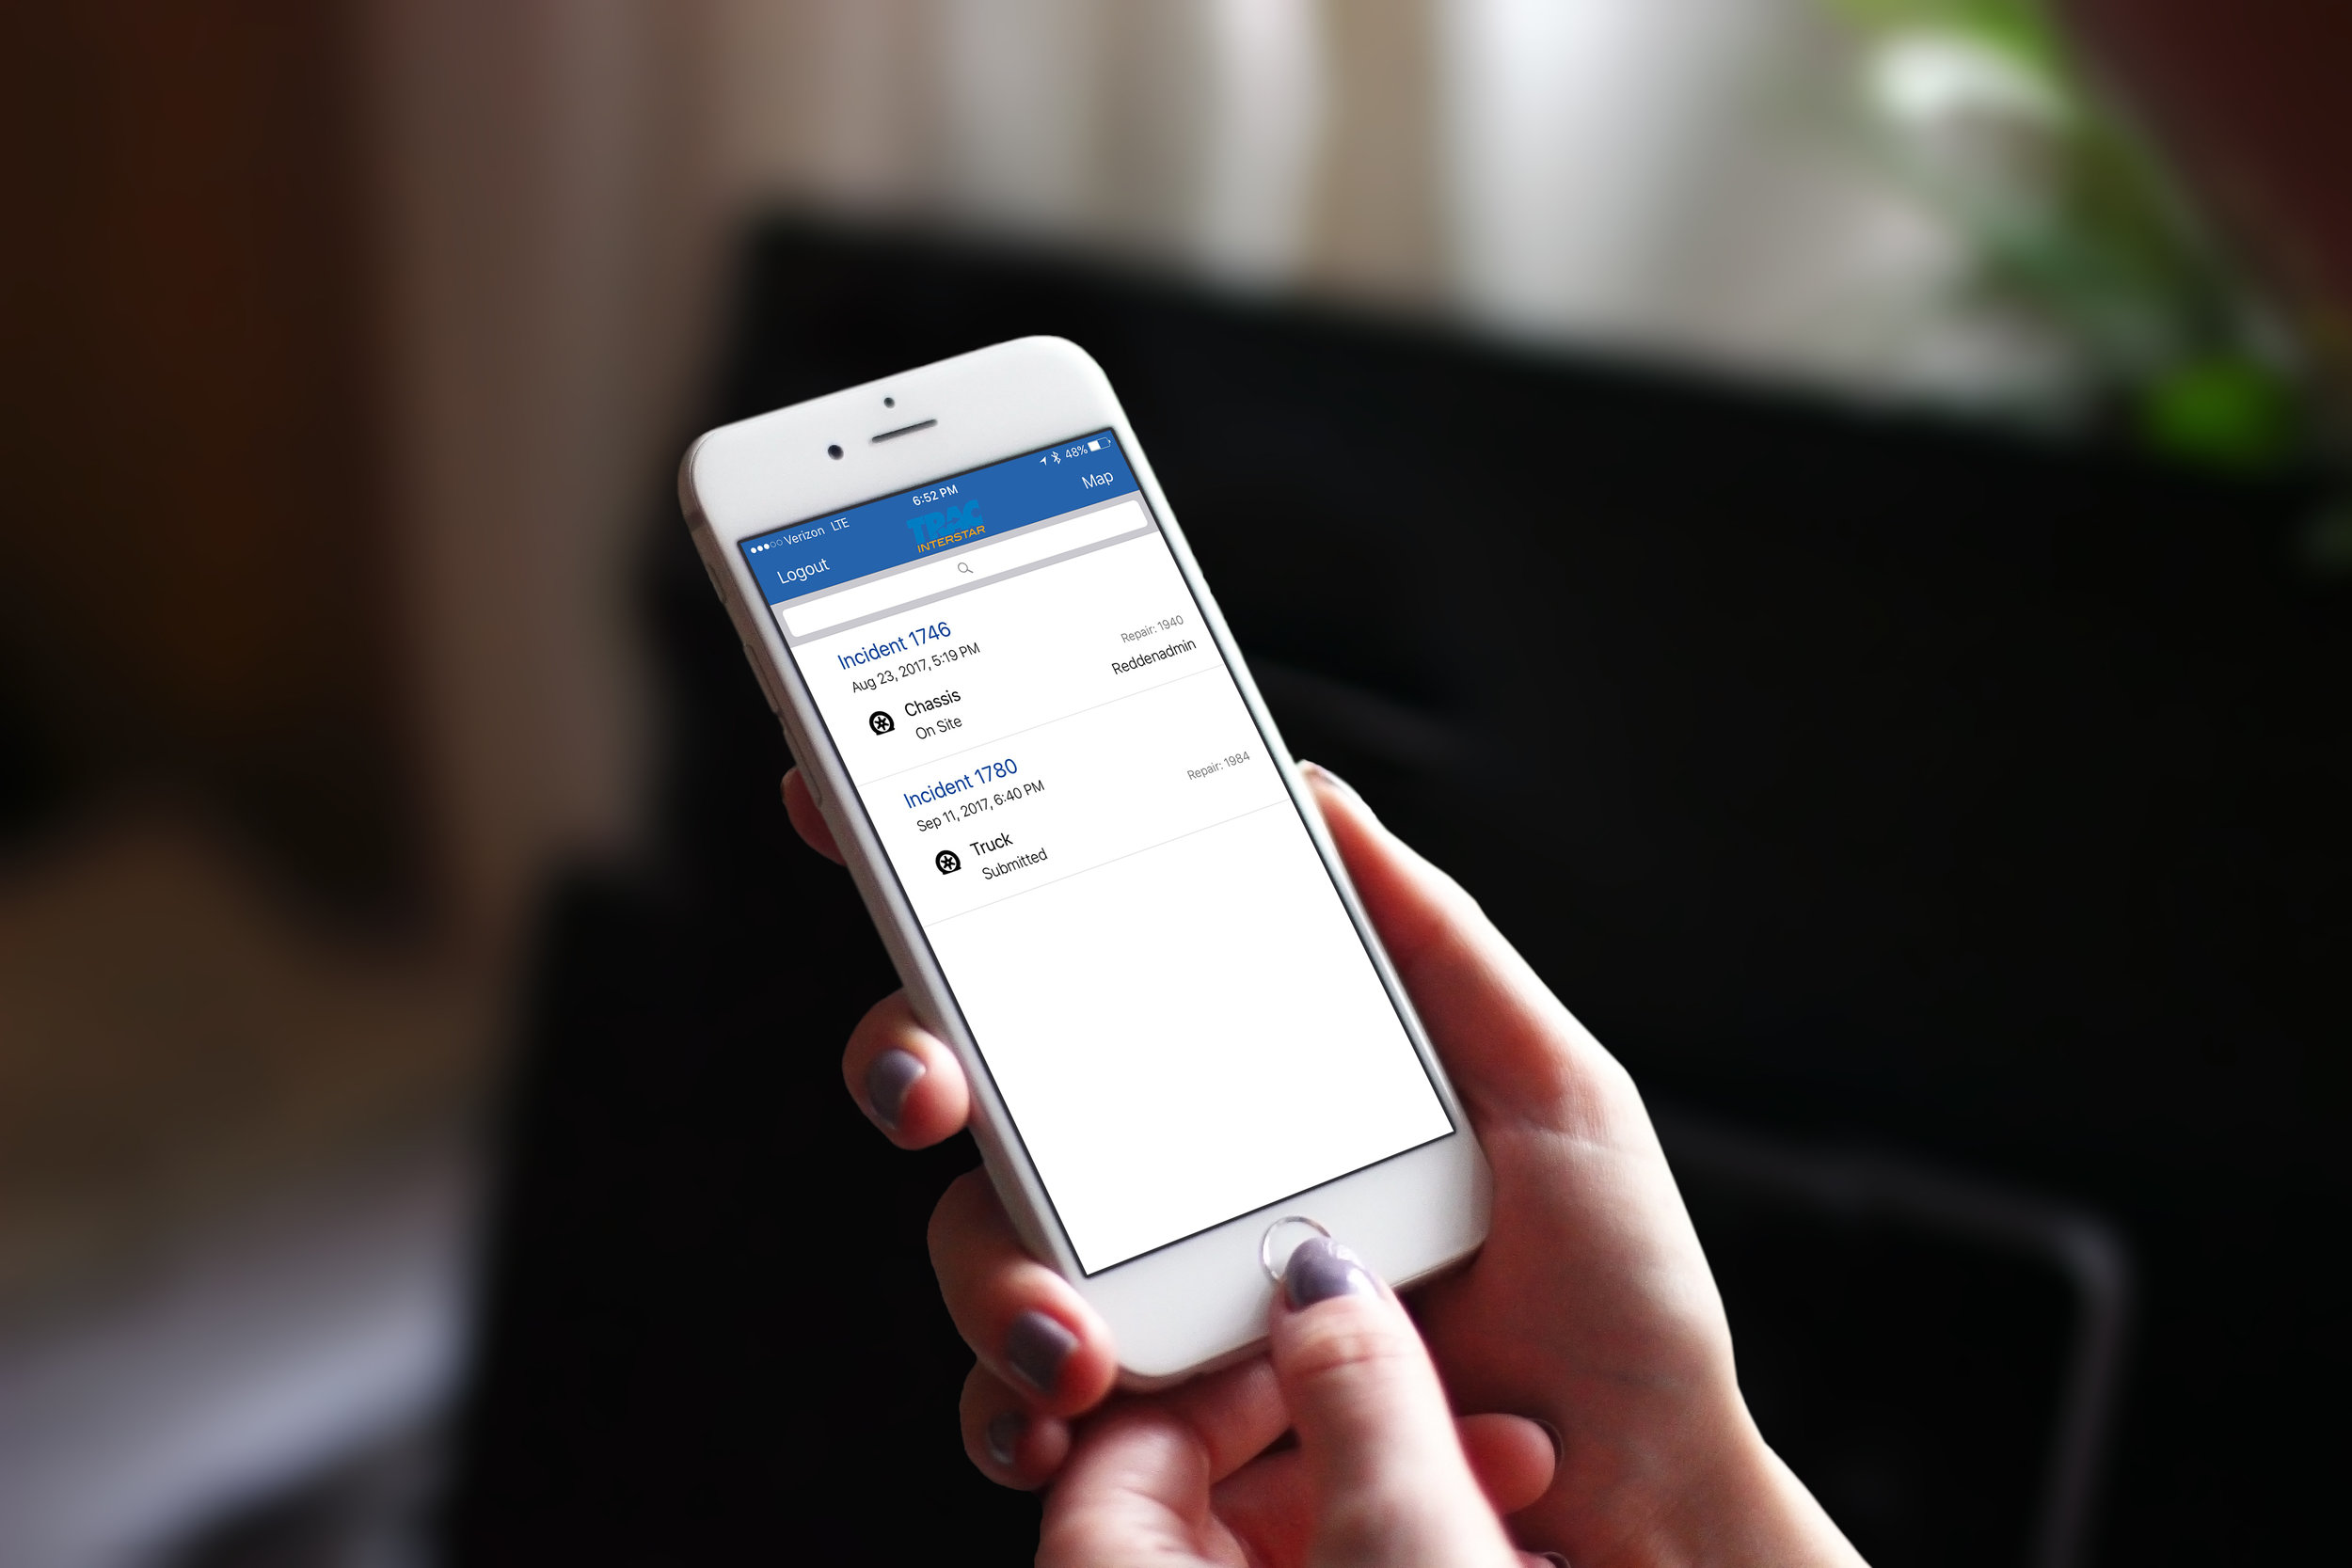 Get a summary of your previous, present & future requests, right from the app